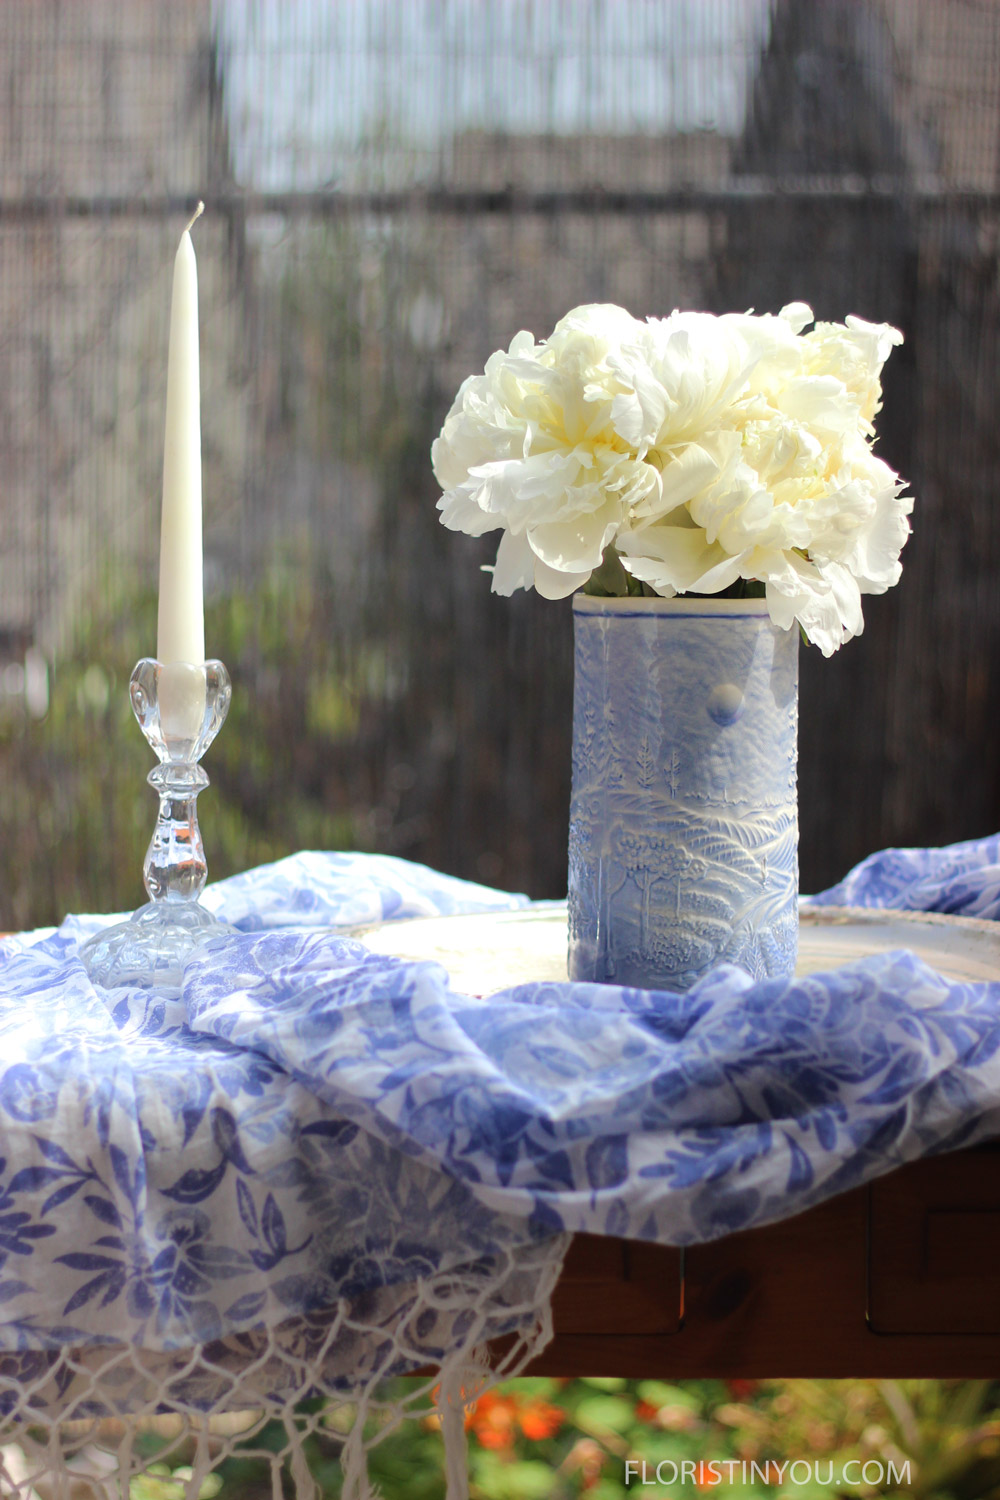 Add a beautiful scarf that compliments the arrangement and a candle and candle stick holder.